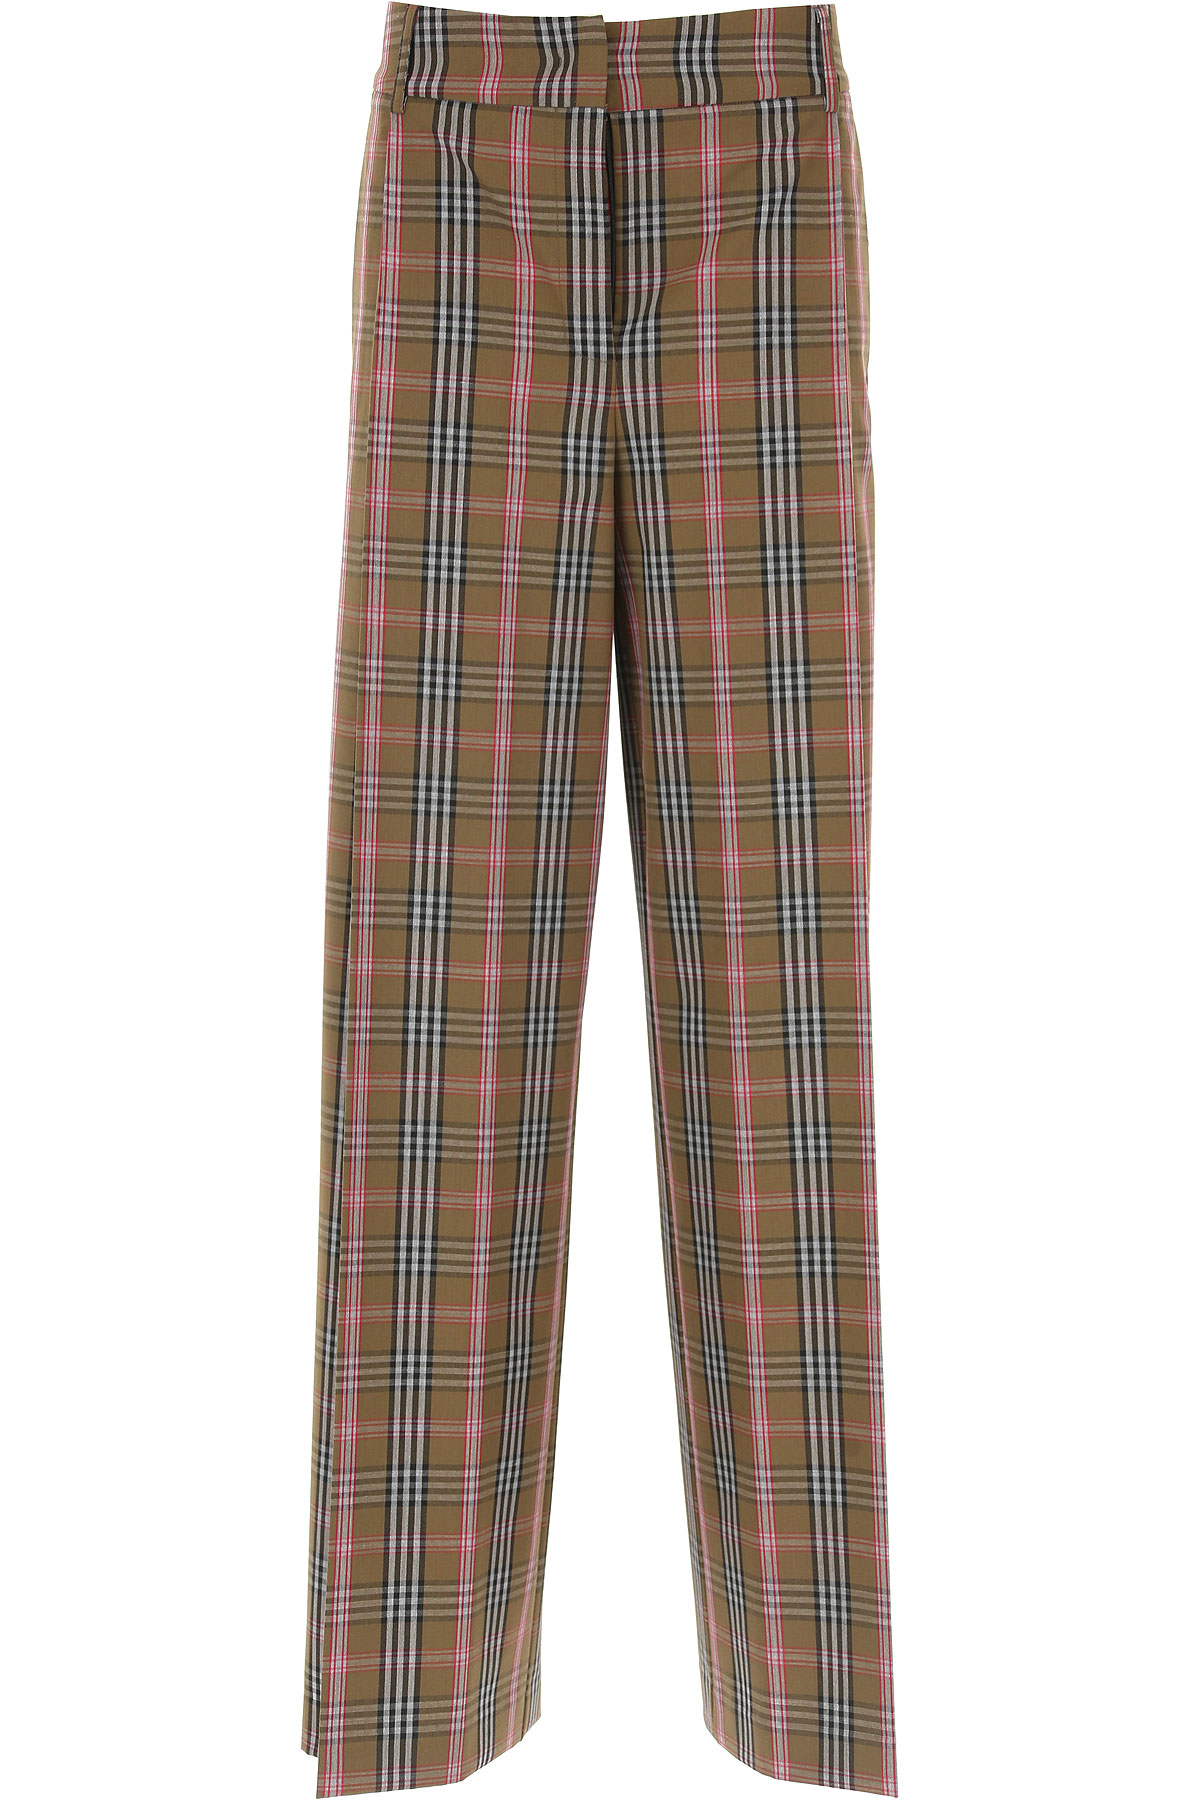 Image of Jucca Pants for Women, Cinnamon, polyester, 2017, 4 6